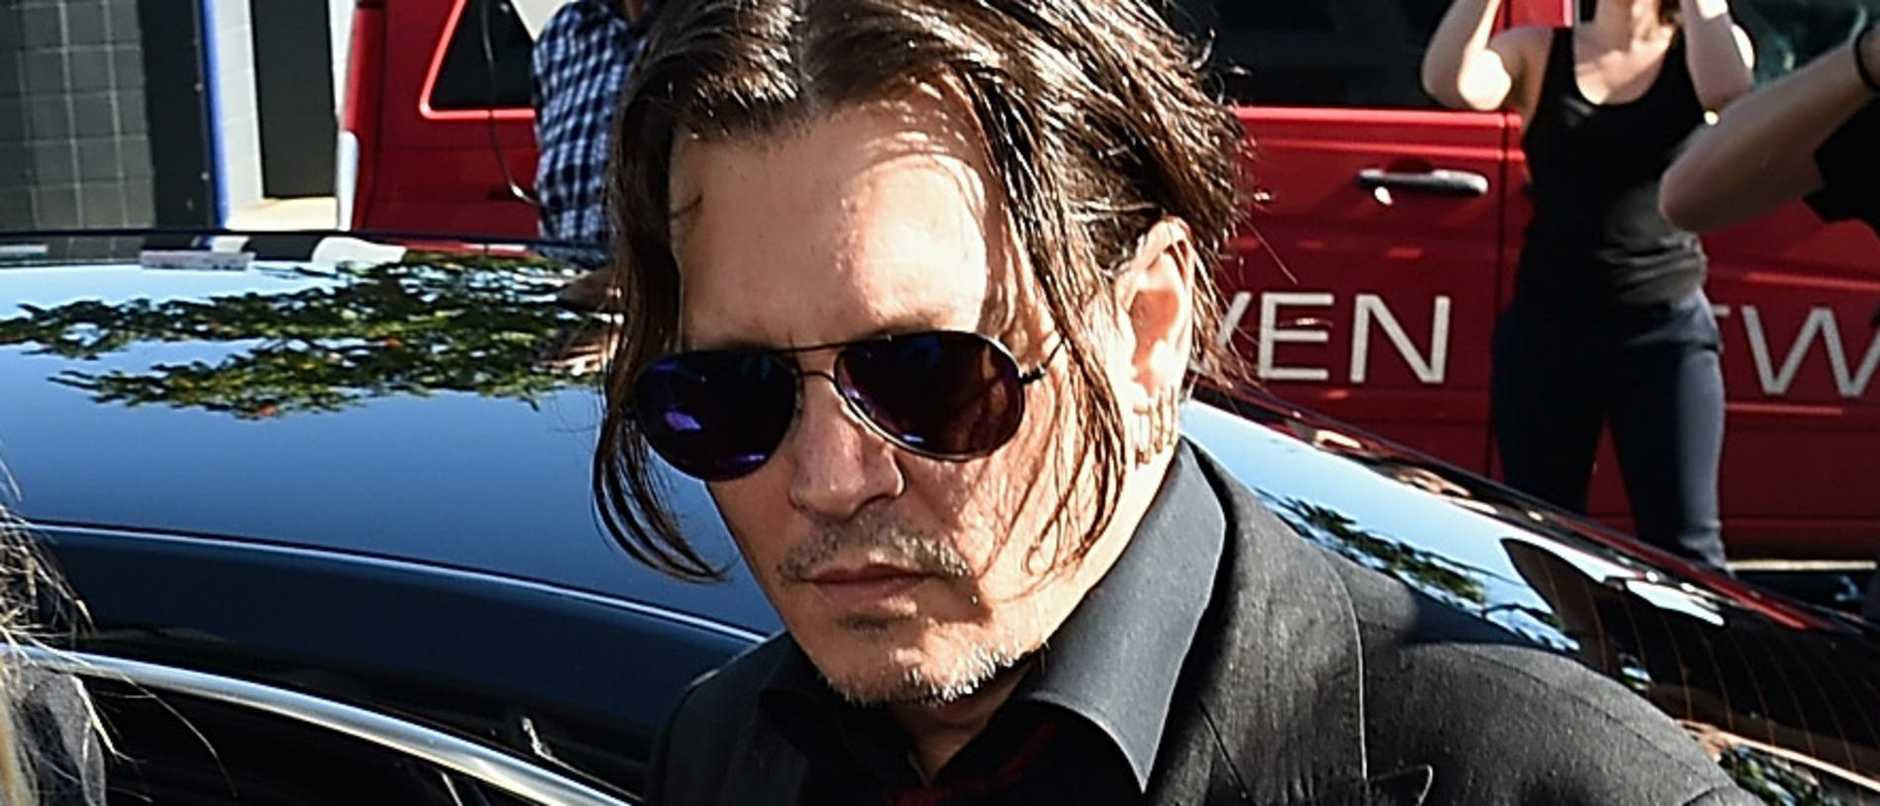 Johnny Depp is back in the made headlines this week – just as he was when he spent months filming on the Gold Coast. These are the wildest tales.